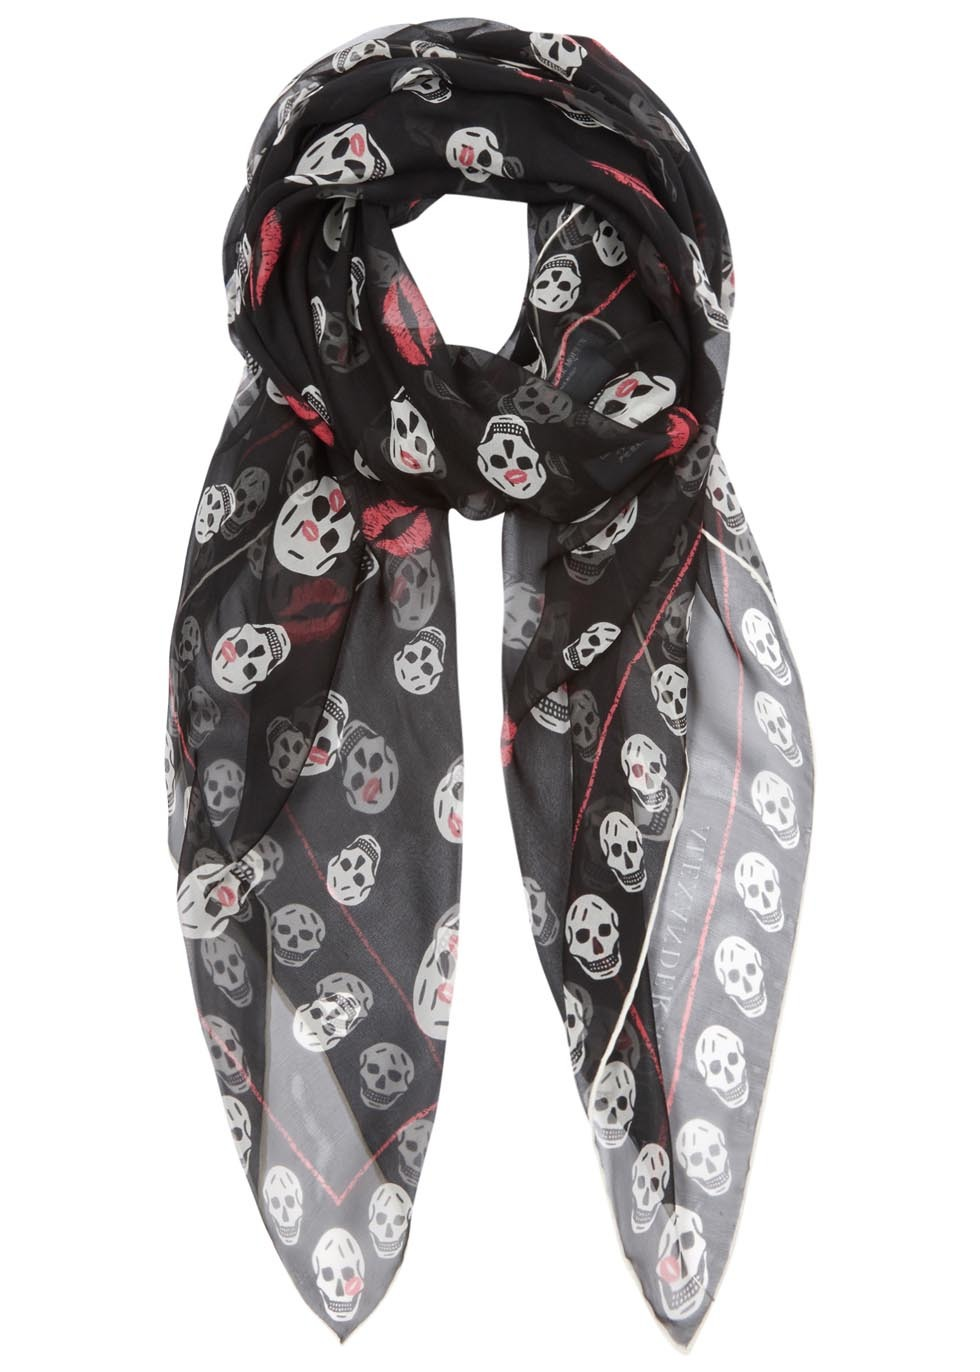 Skull Kisses Black Silk Chiffon Scarf - predominant colour: black; occasions: casual; type of pattern: large; style: regular; size: standard; material: fabric; pattern: patterned/print; season: s/s 2016; wardrobe: highlight